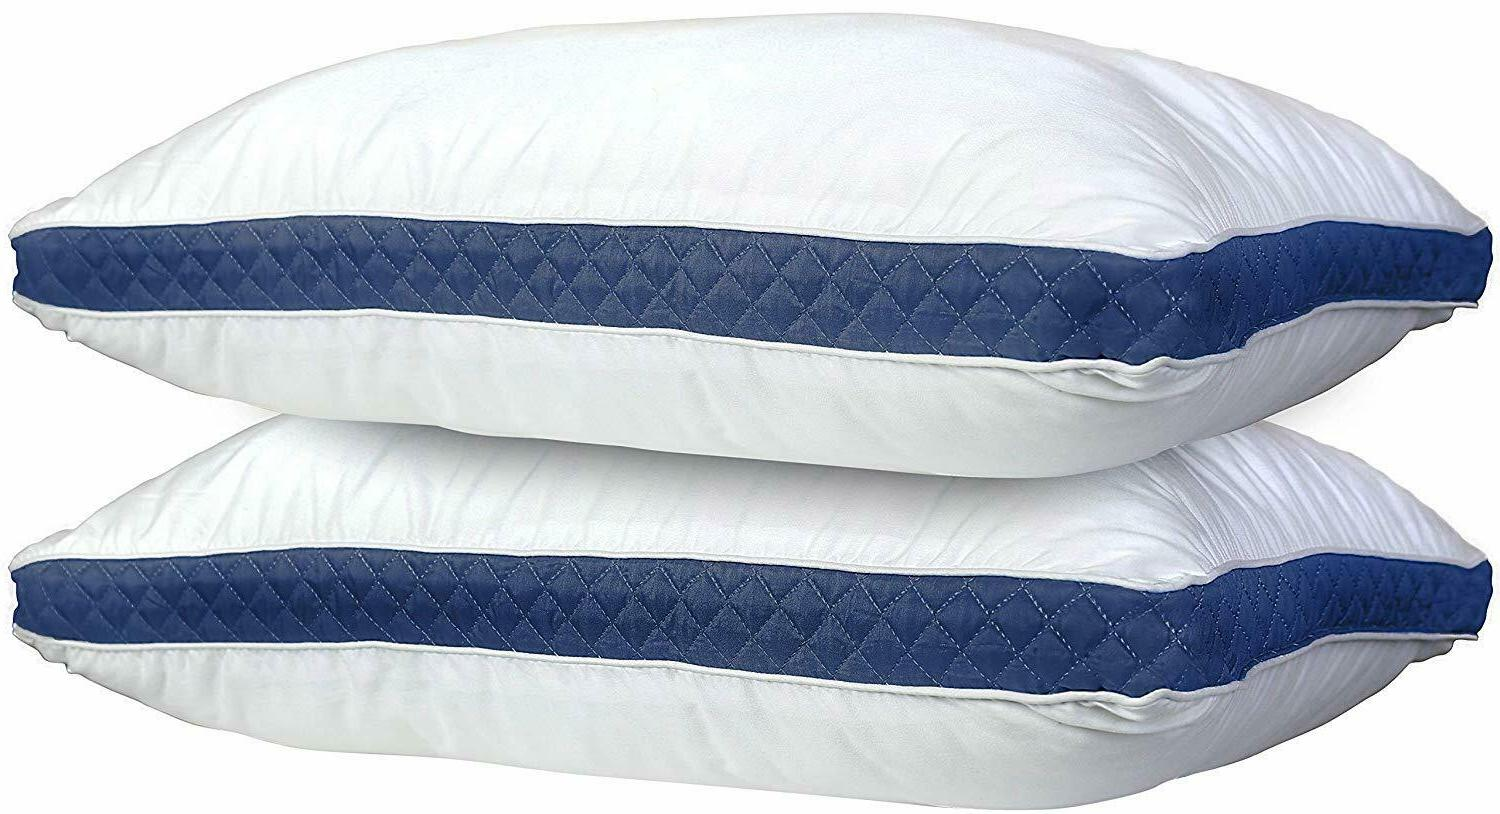 Gusseted Pillow Set of 2 Bed Pillows Neck Support Side & Bac